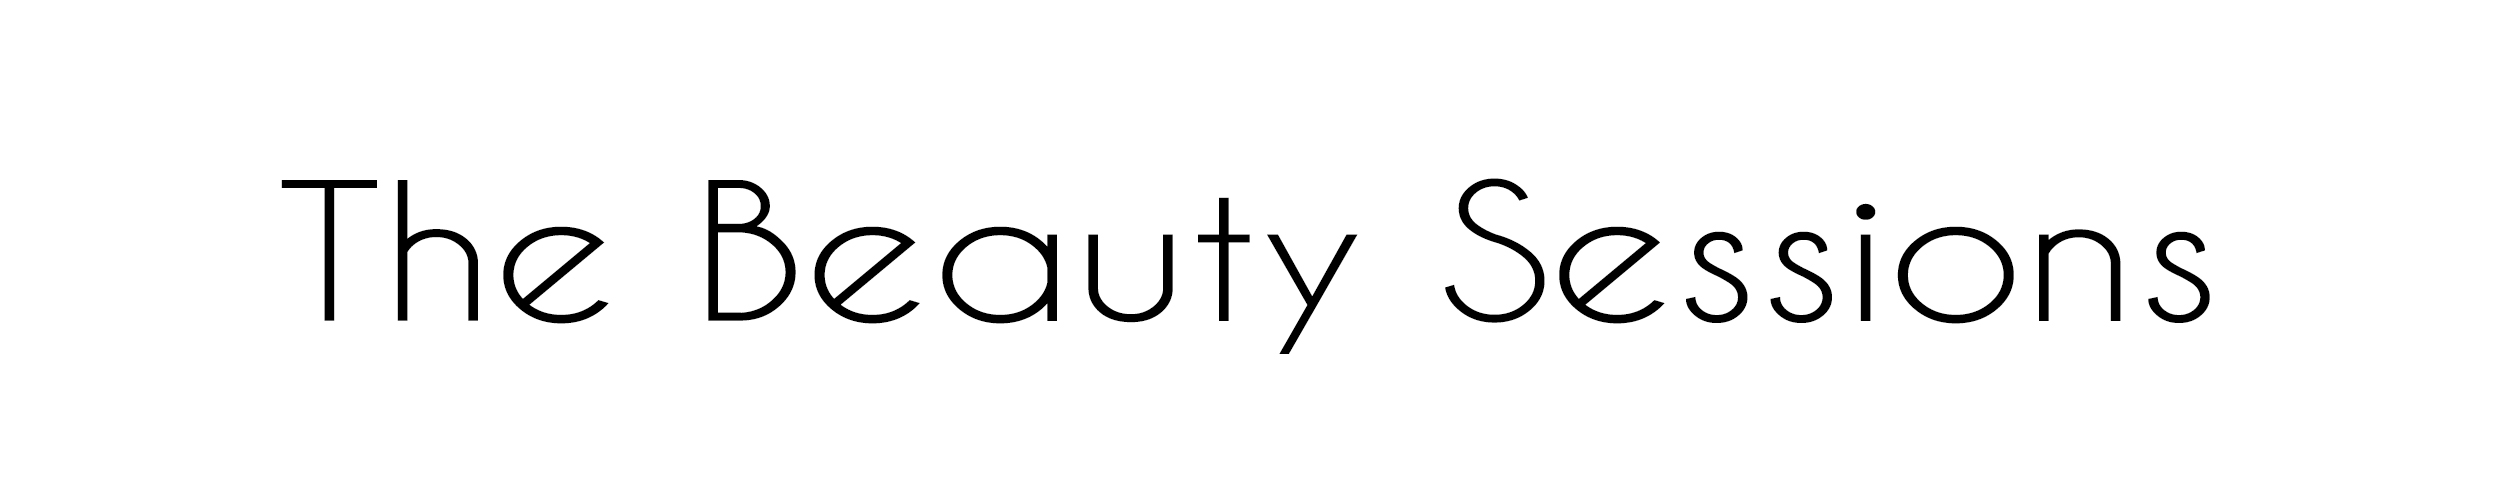 The Beauty Sessions.jpg